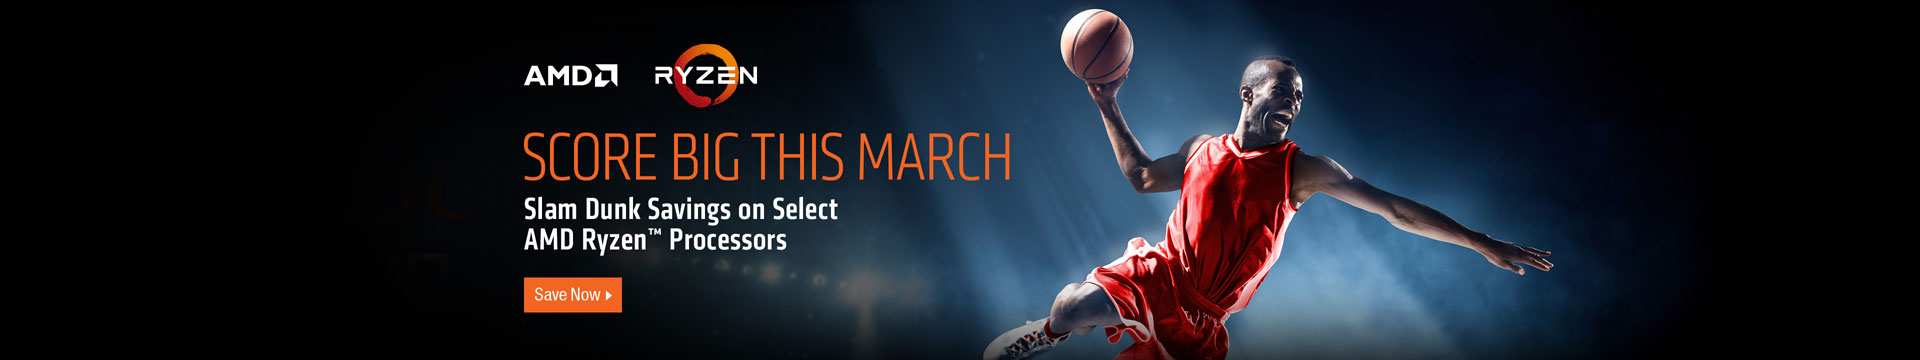 SCORE BIG THIS MARCH